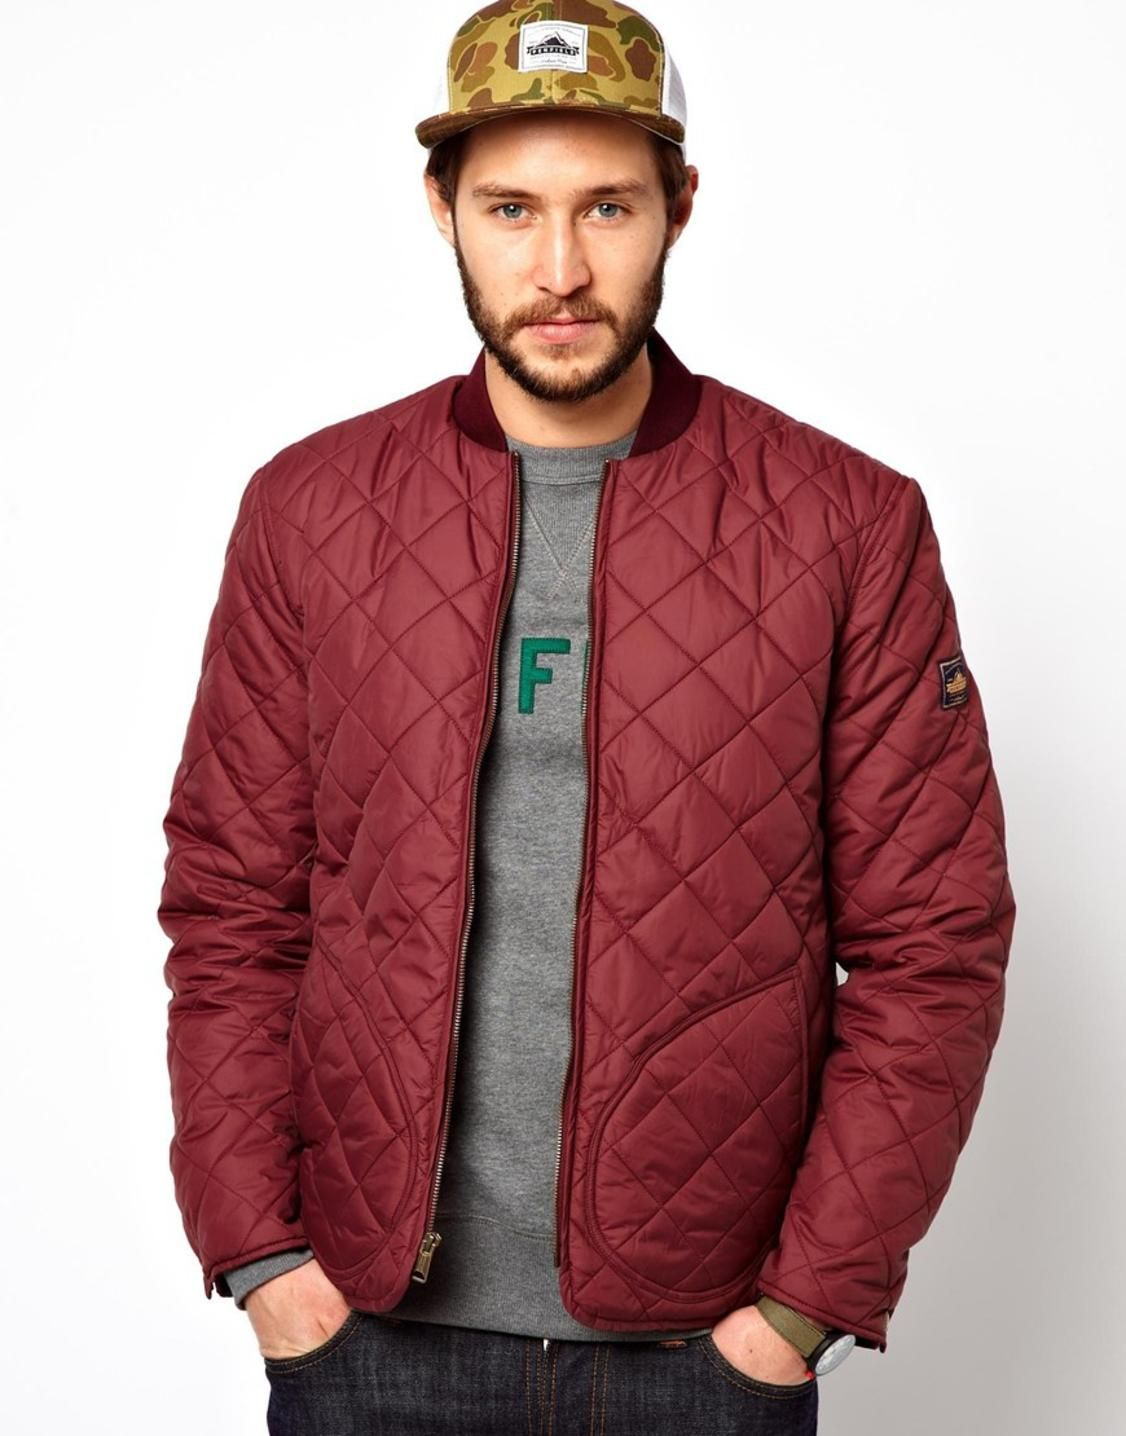 Penfield Penfield Landrum Quilted Bomber Jacket Exclusive Quilted Bomber Jacket Quilted Bomber Jackets